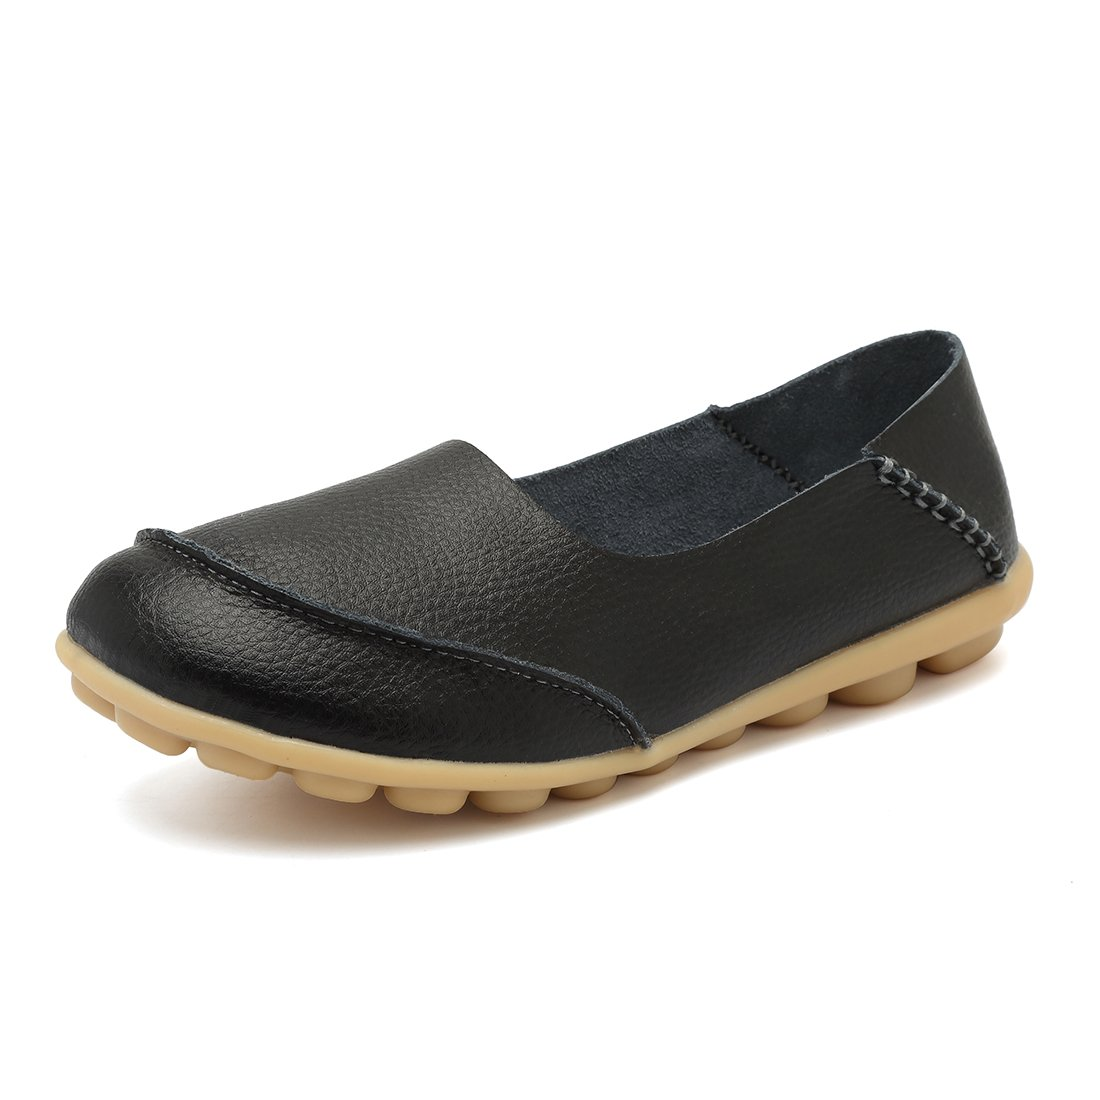 KISFLY Black Flat Shoes for Women Size 9.5 Comfort Round Toe Casual Leather Walking Driving Slip-on Loafers